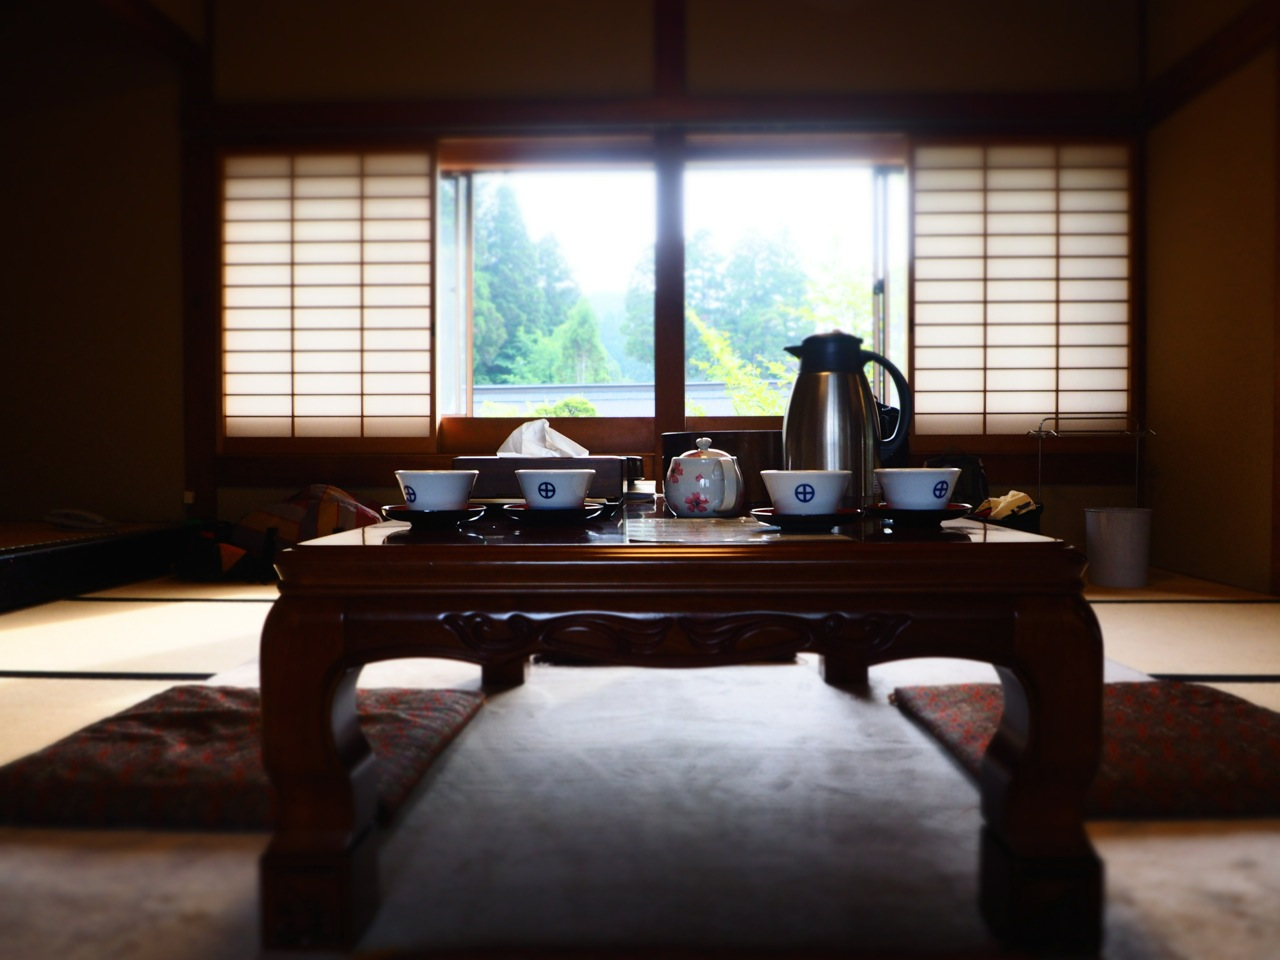 Eko-in buddhist temple and guesthouse at Koyasan, in the Kansai region of Japan. Images: Alison Binney